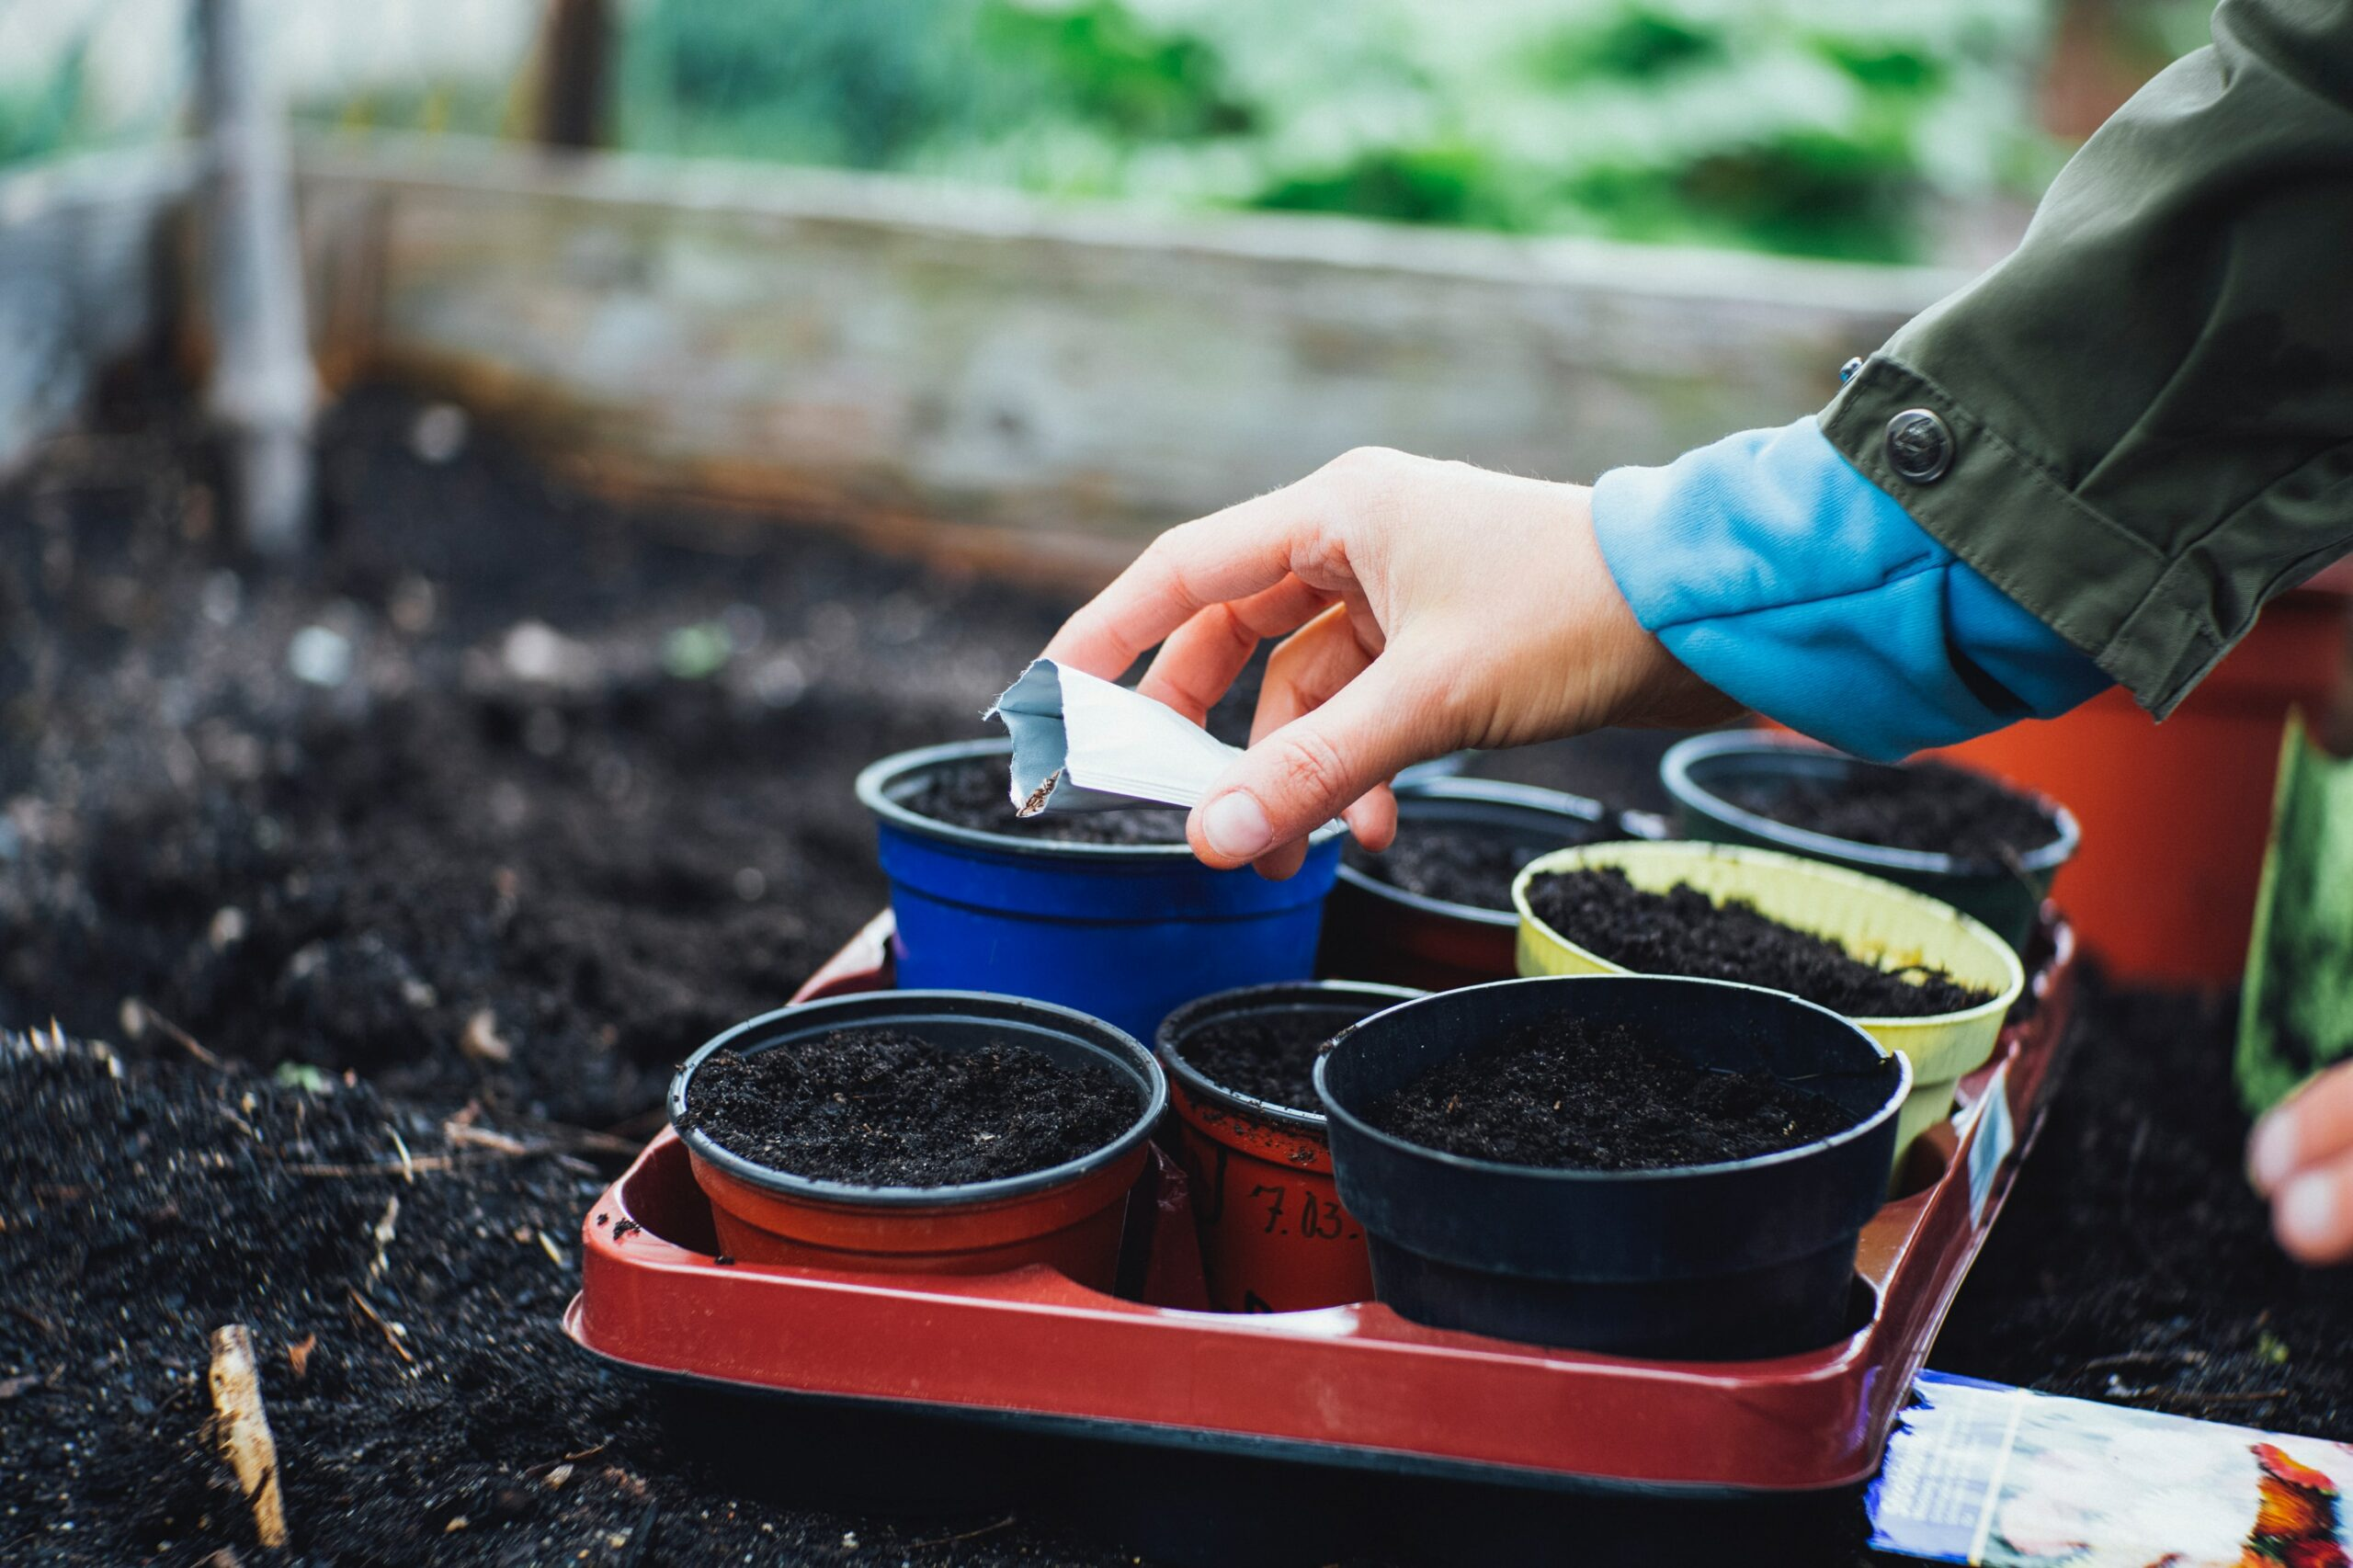 A woman transferring potted plants into a garden bed